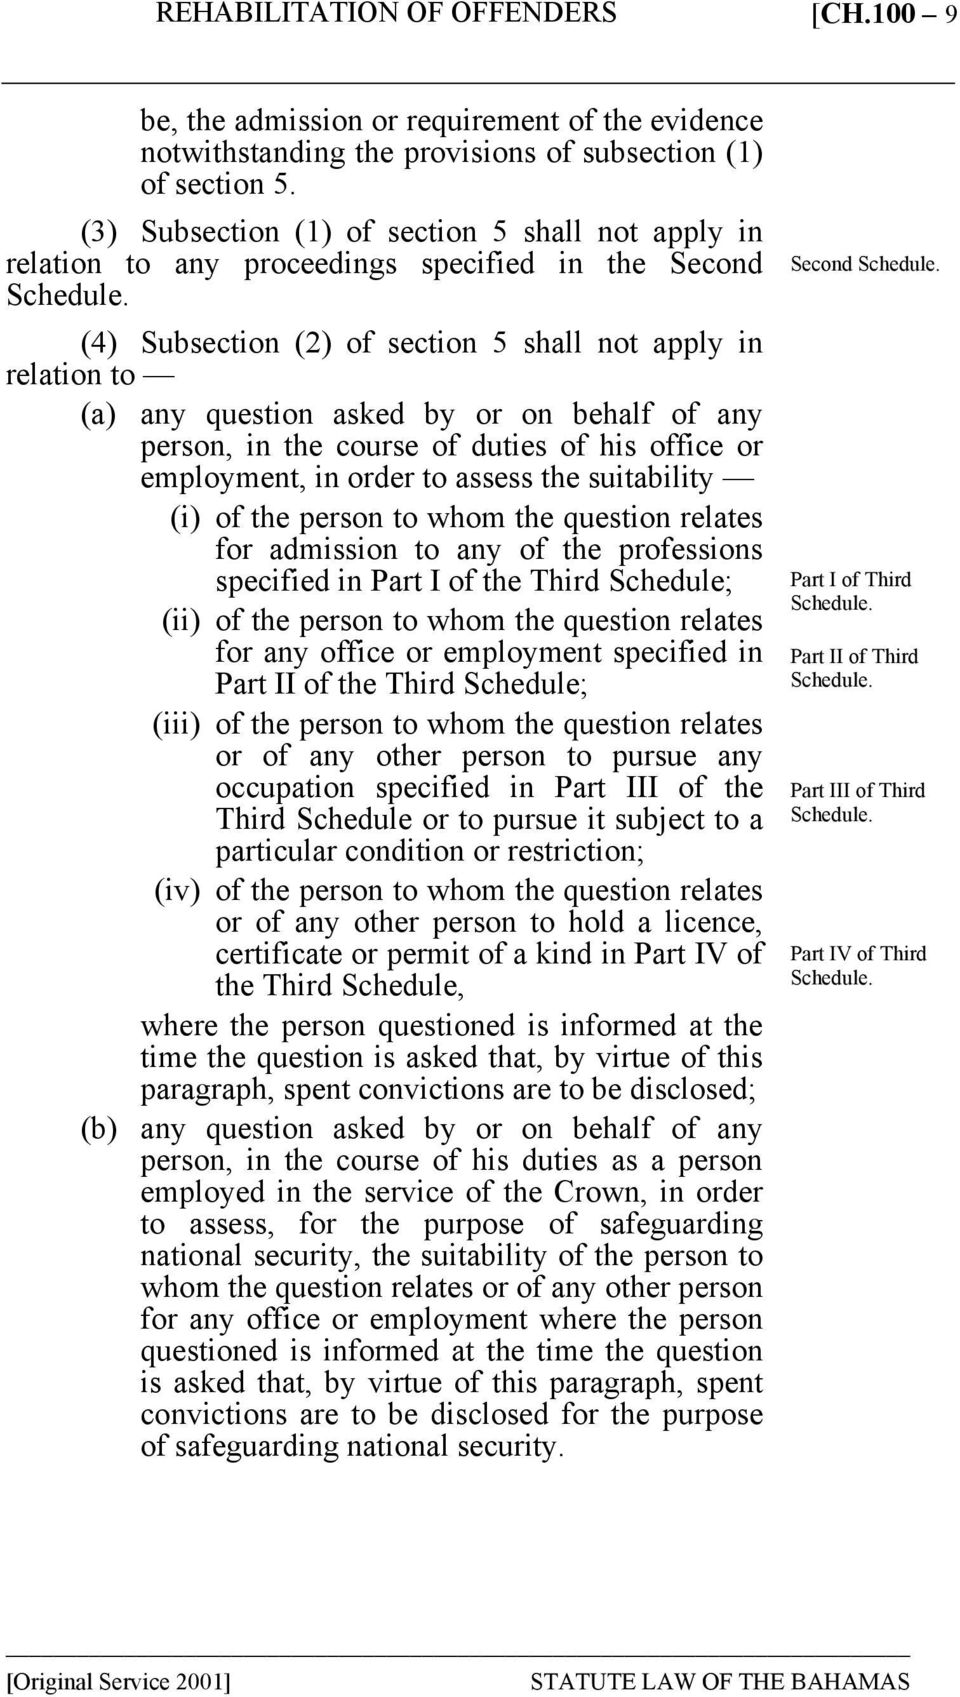 (4) Subsection (2) of section 5 shall not apply in relation to (a) any question asked by or on behalf of any person, in the course of duties of his office or employment, in order to assess the